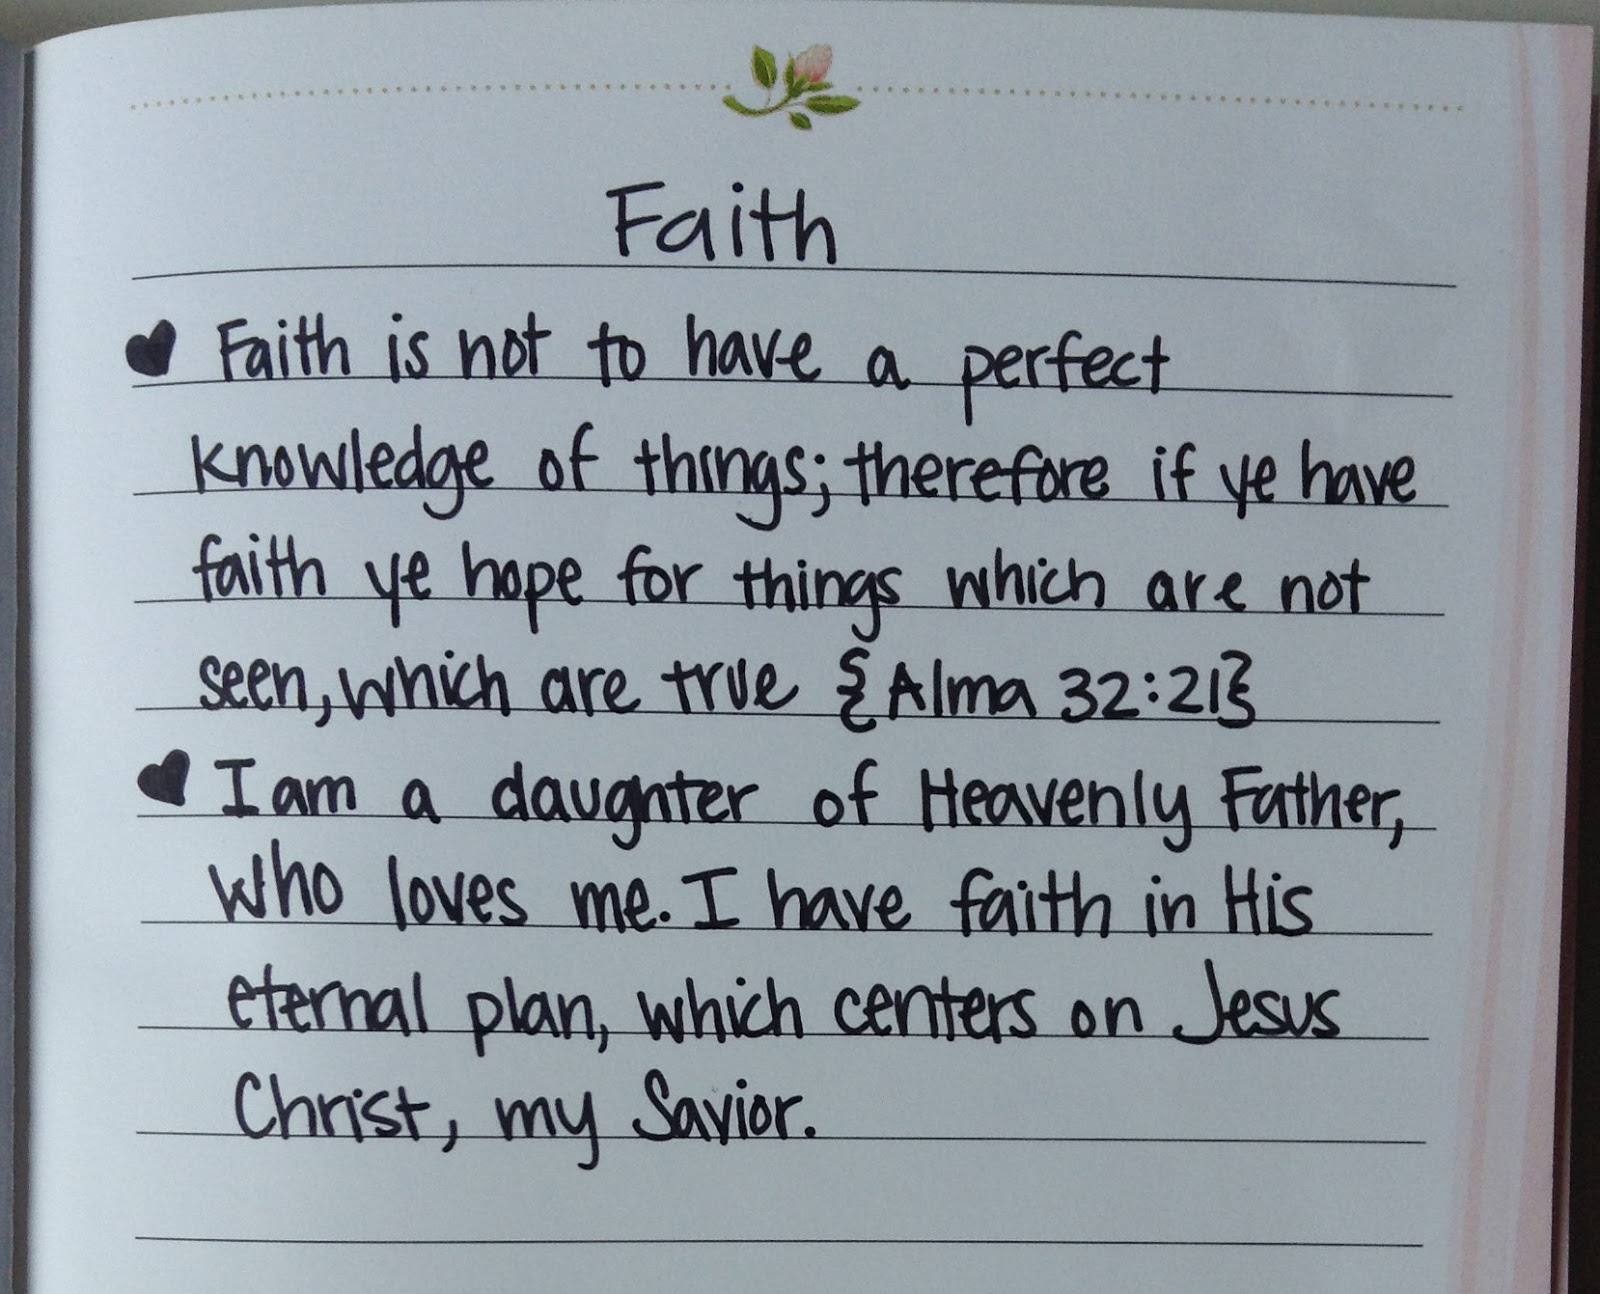 my personal statement of faith